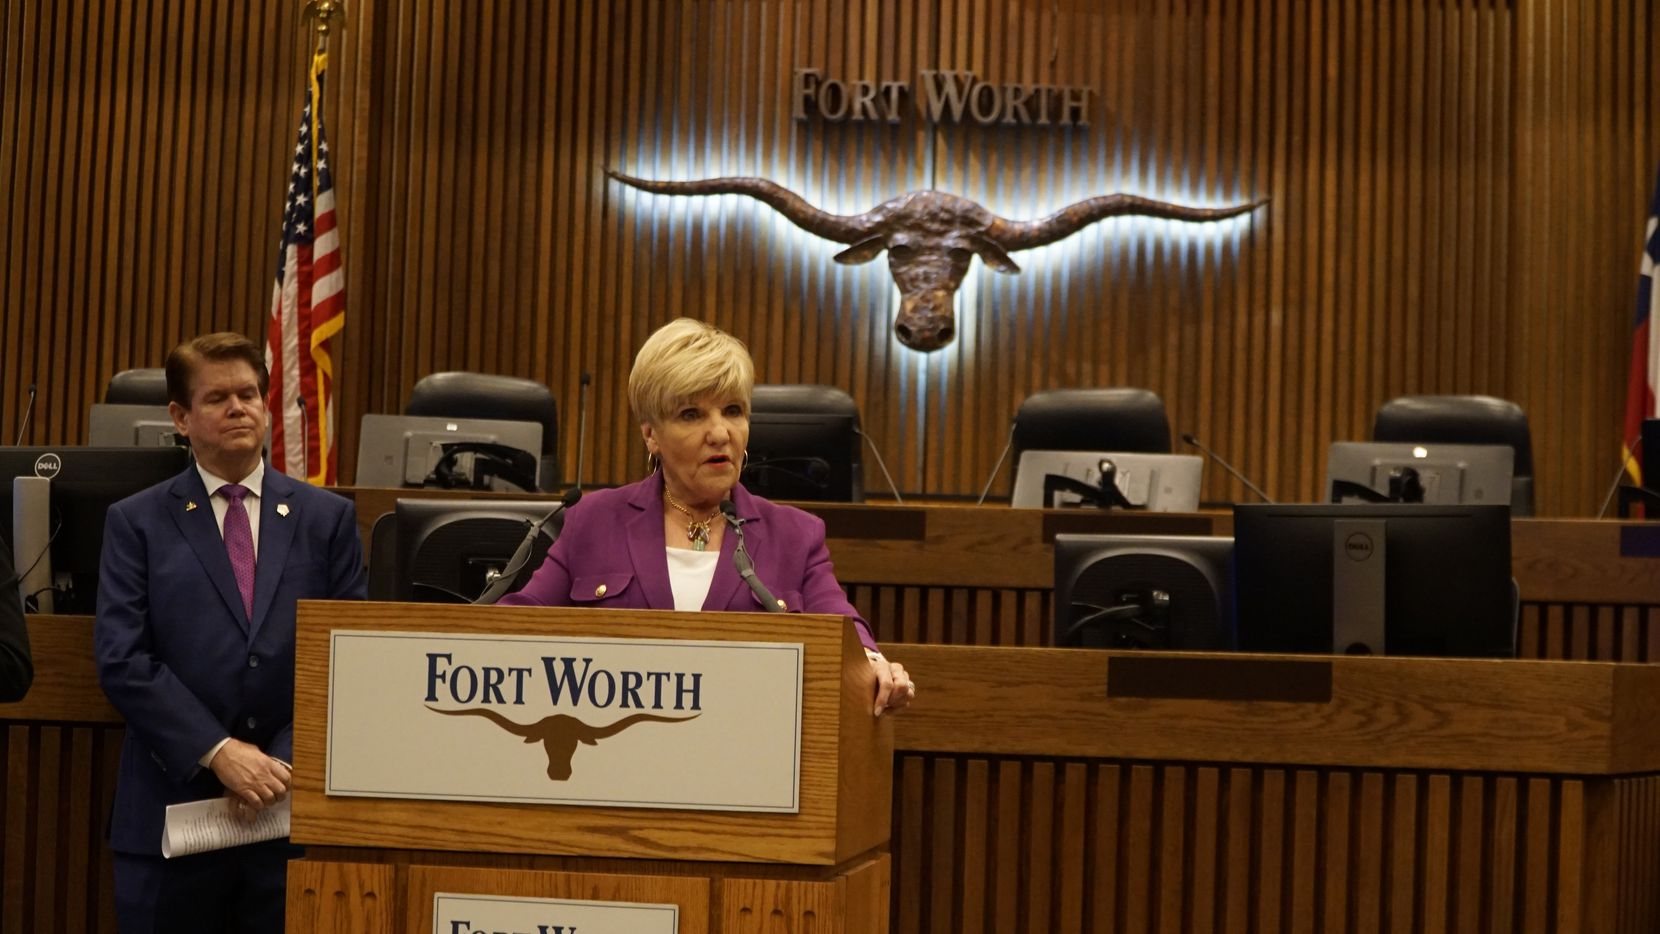 Mayor Betsy Price asked the residents of Tarrant County to stay at home during a news conference at City Hall in Fort Worth on March 24, 2020.